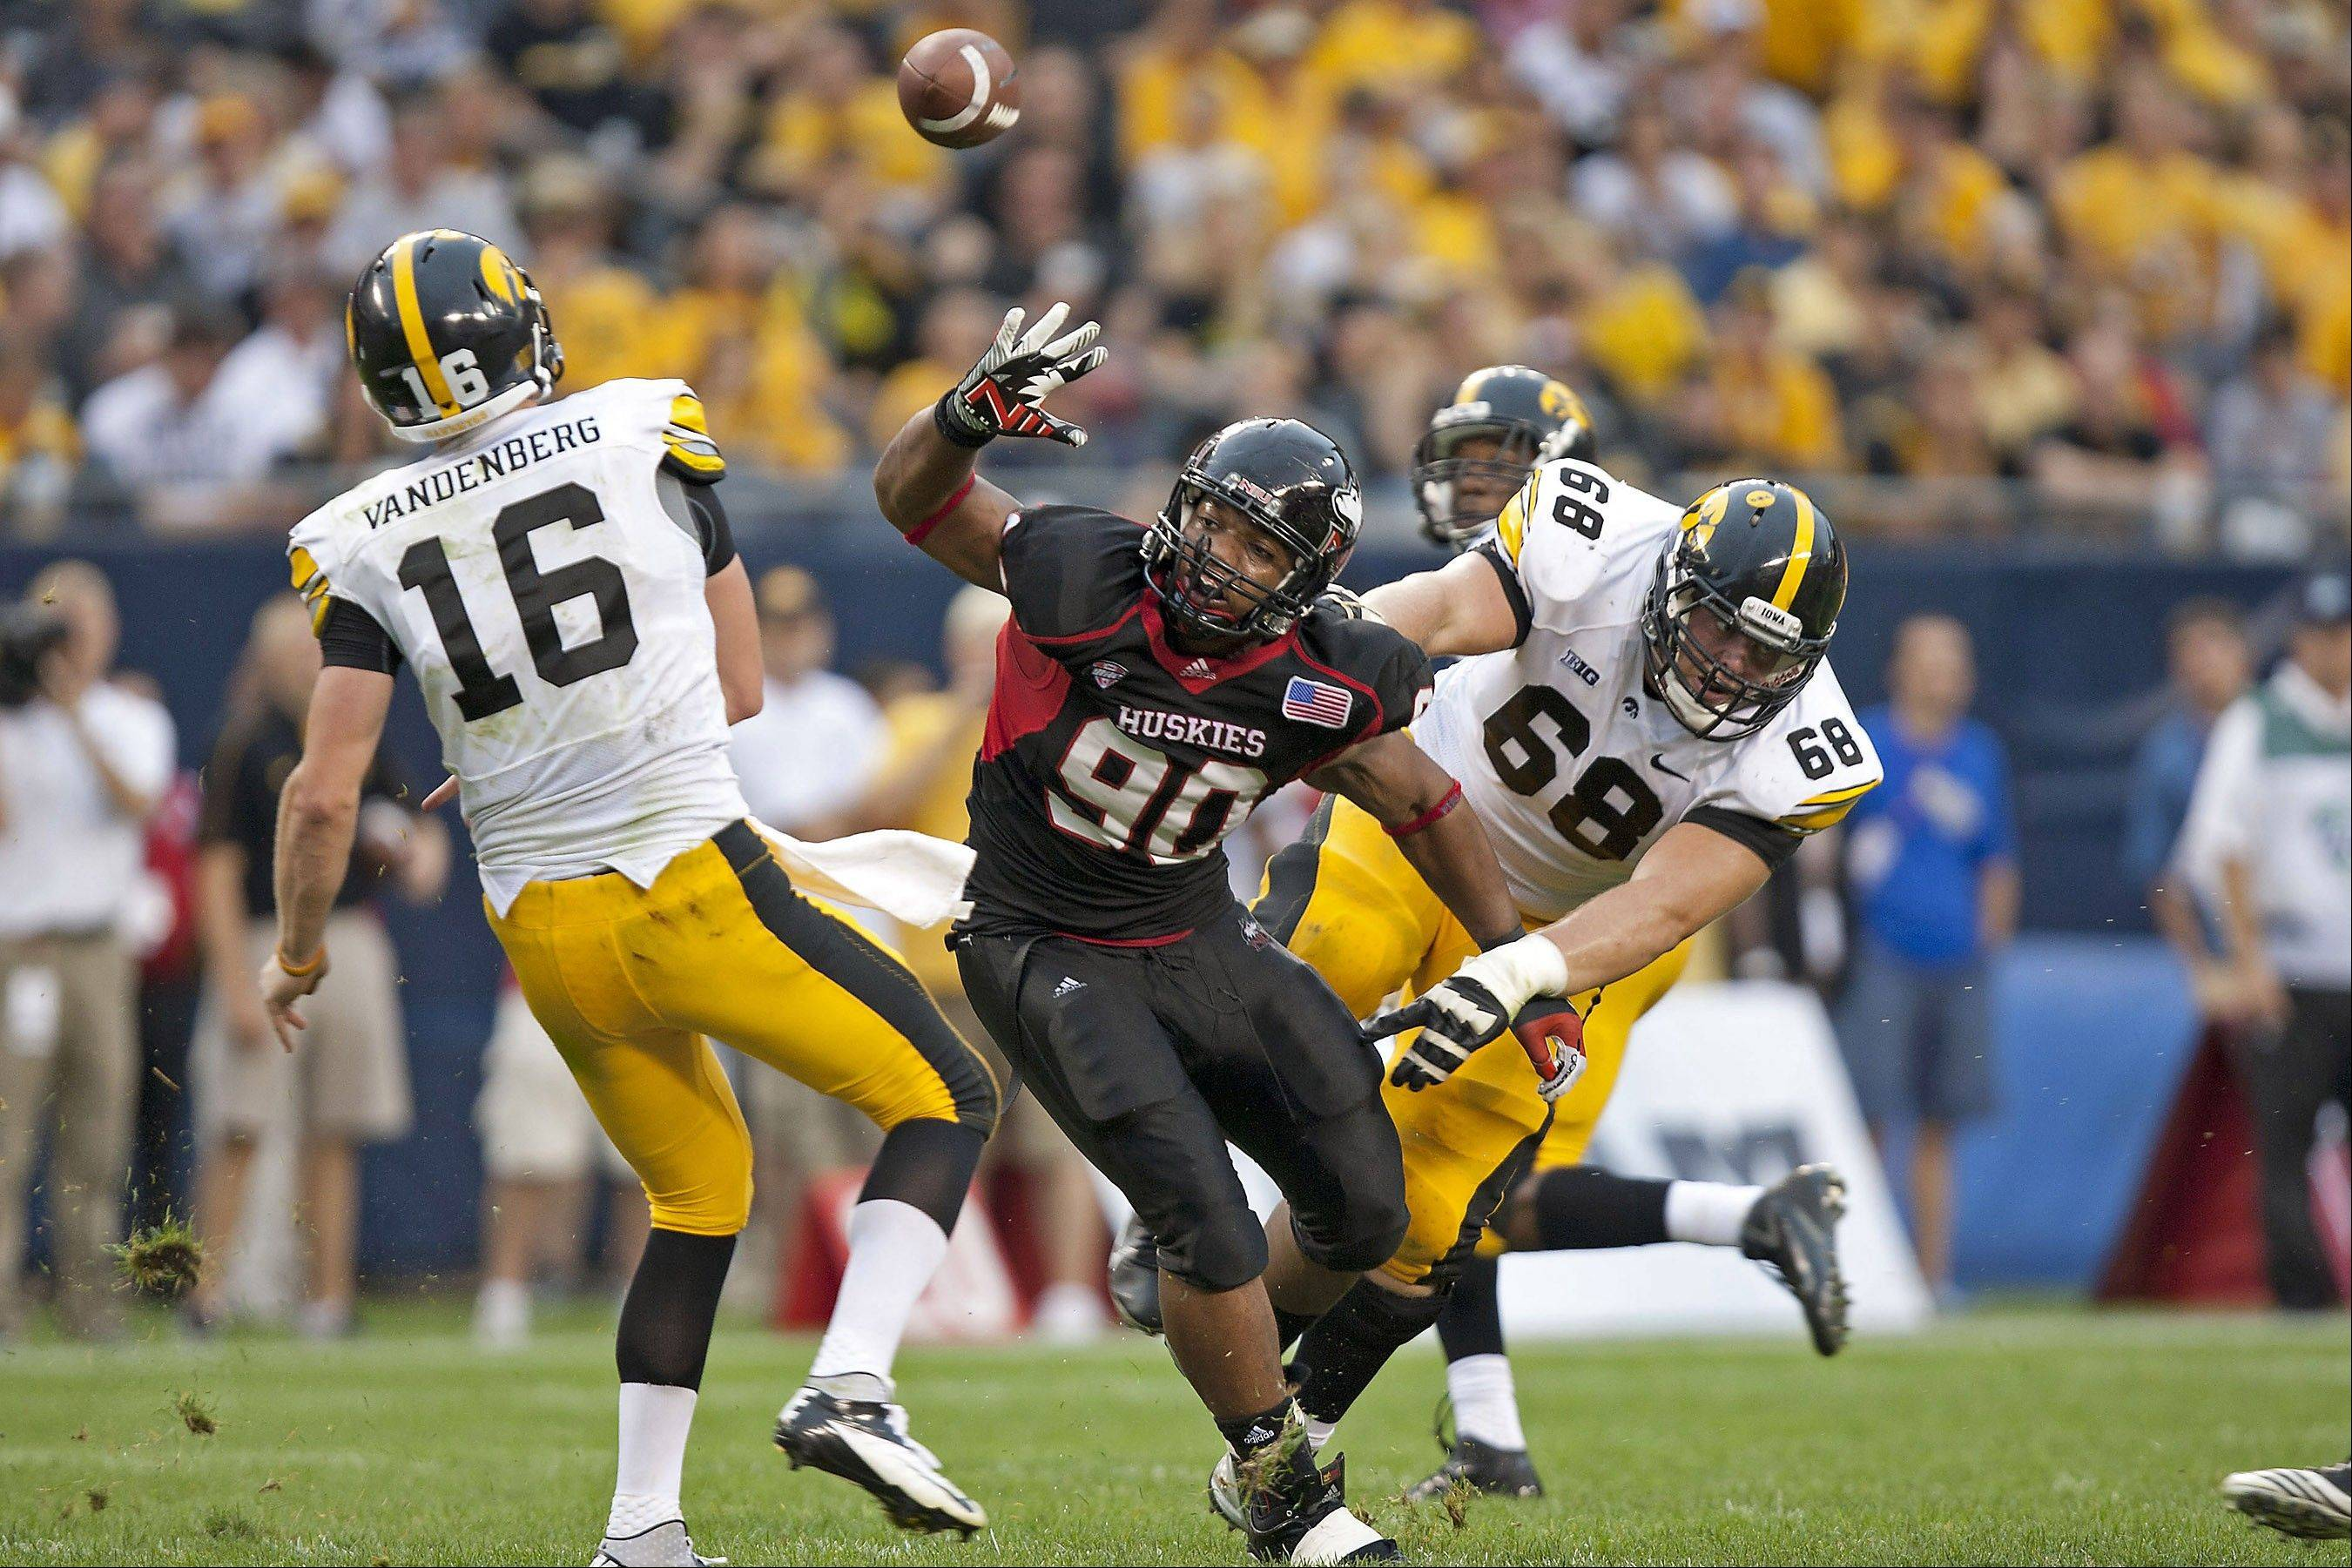 Undersized Baxter a big key for NIU defense